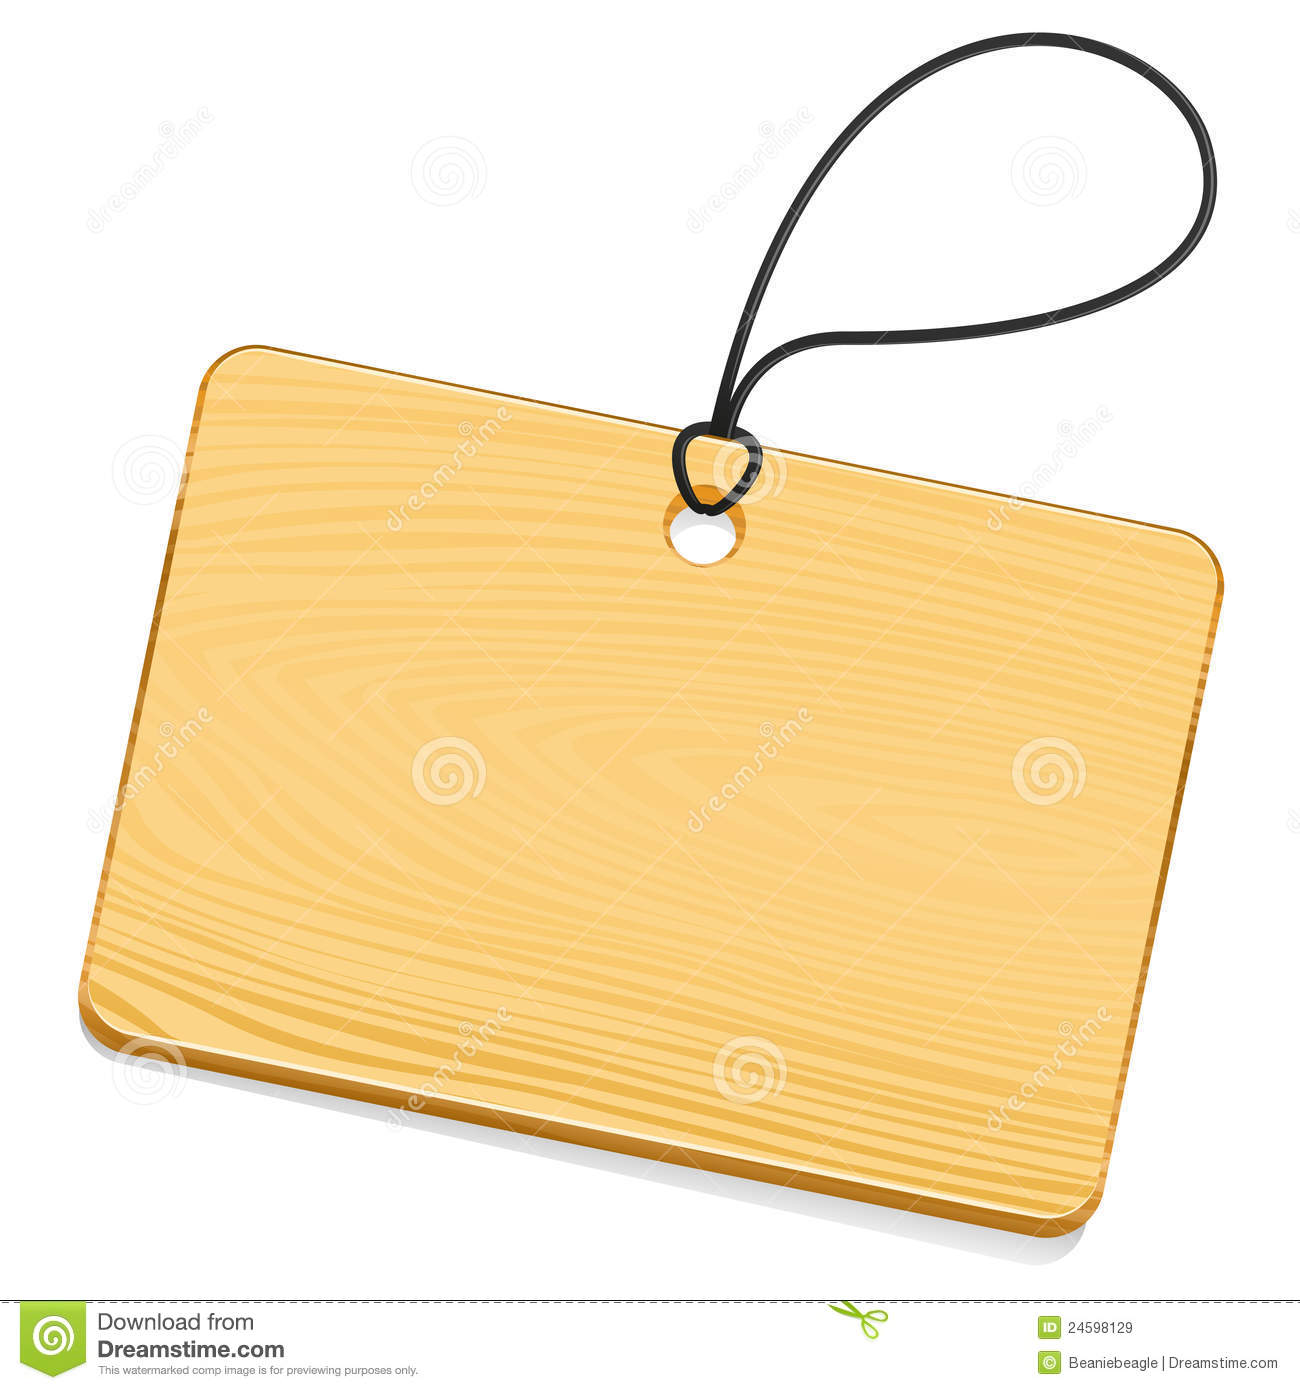 Wooden Tag Royalty Free Stock Images - Image: 24598129